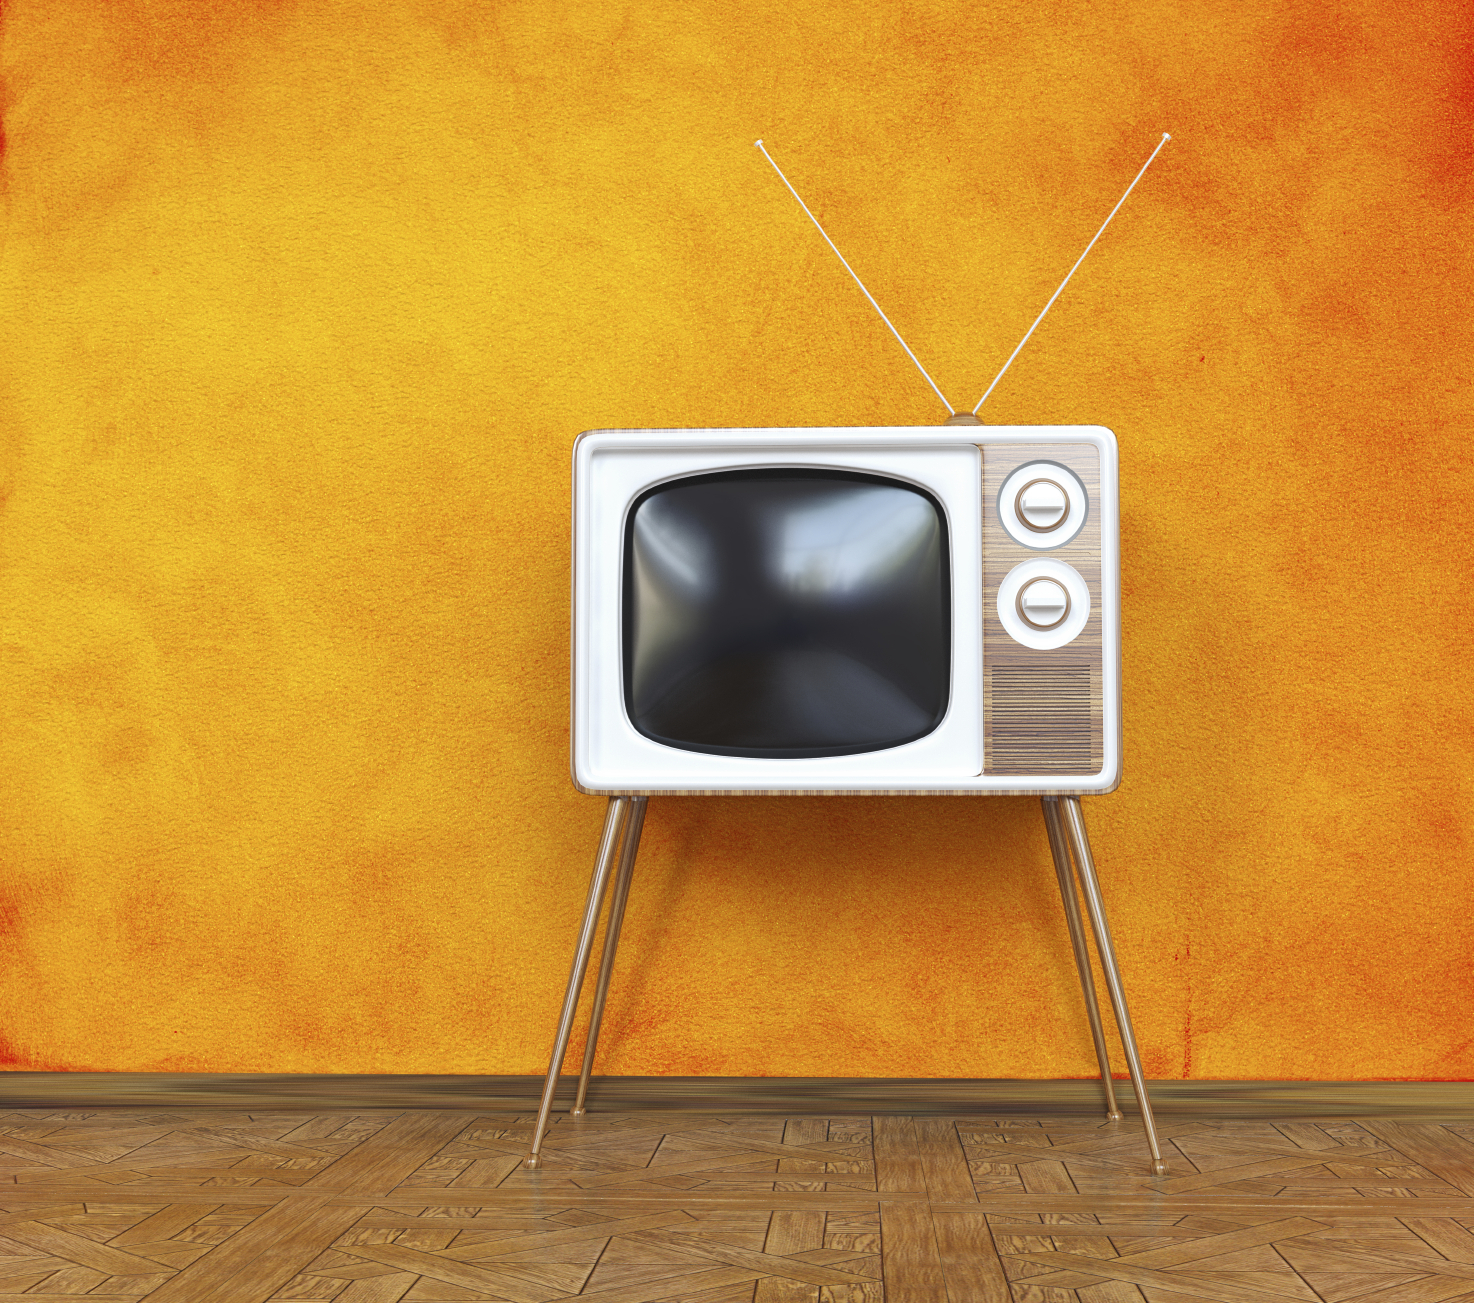 vintage television over orange background. 3d concept